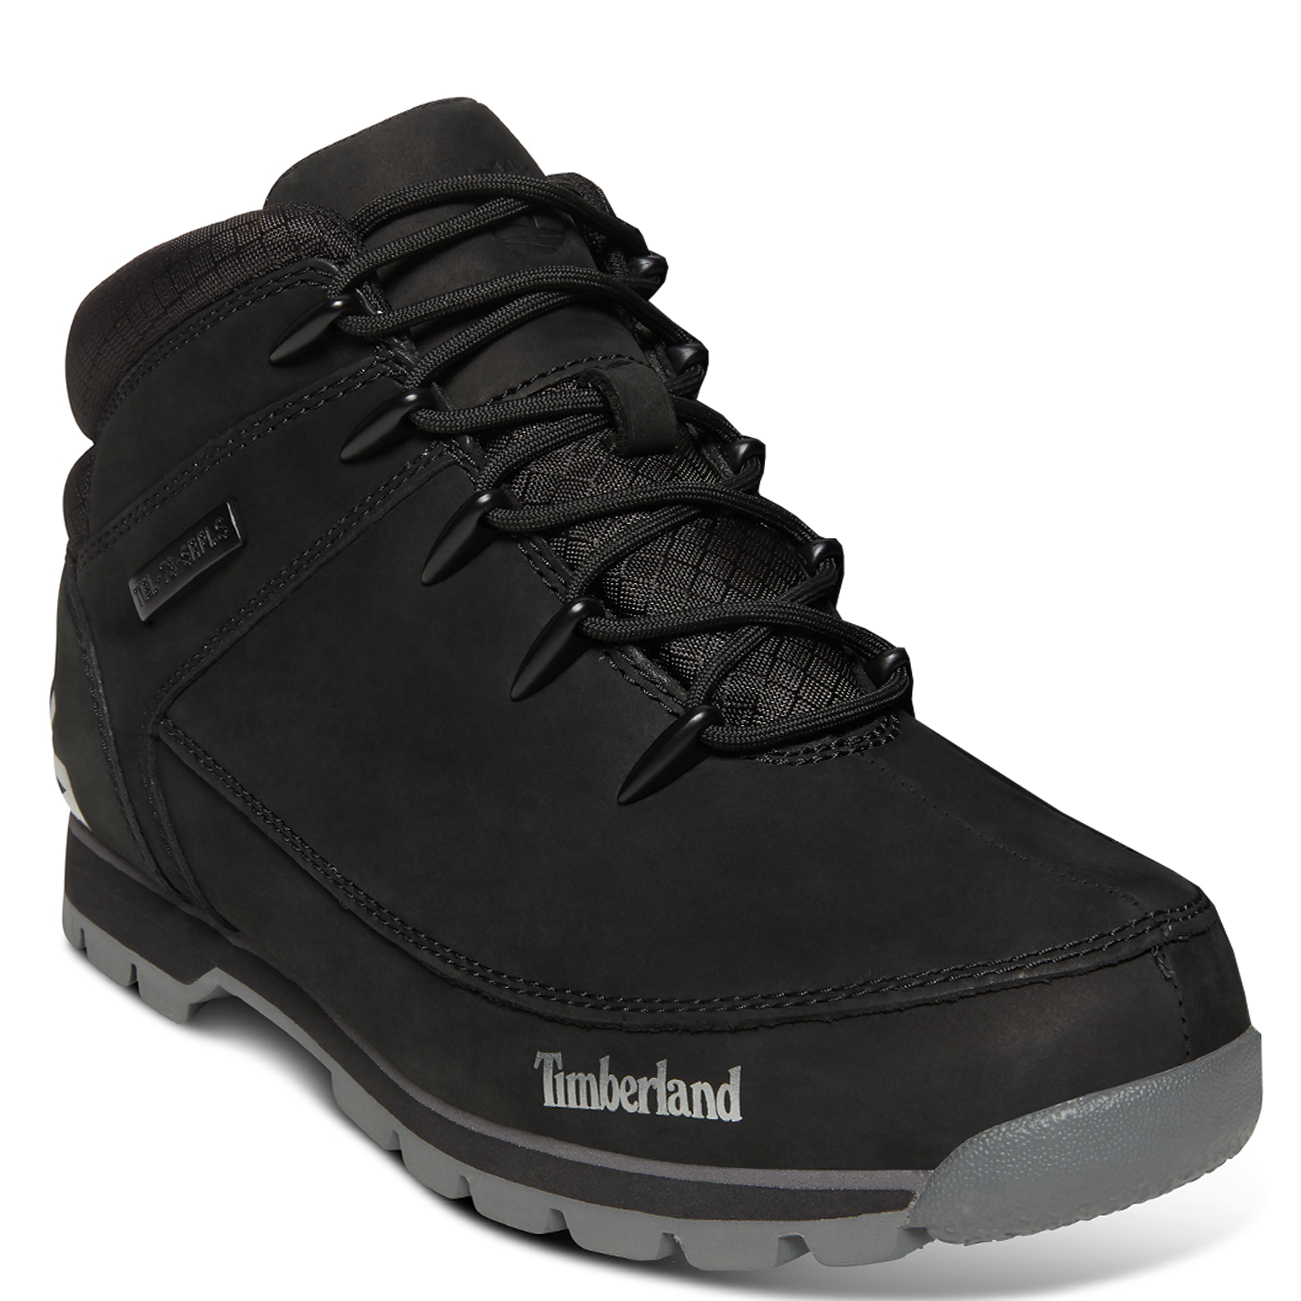 Details about Mens Timberland Euro Sprint Hiker Leather Winter Walking Ankle Boots UK 6 12